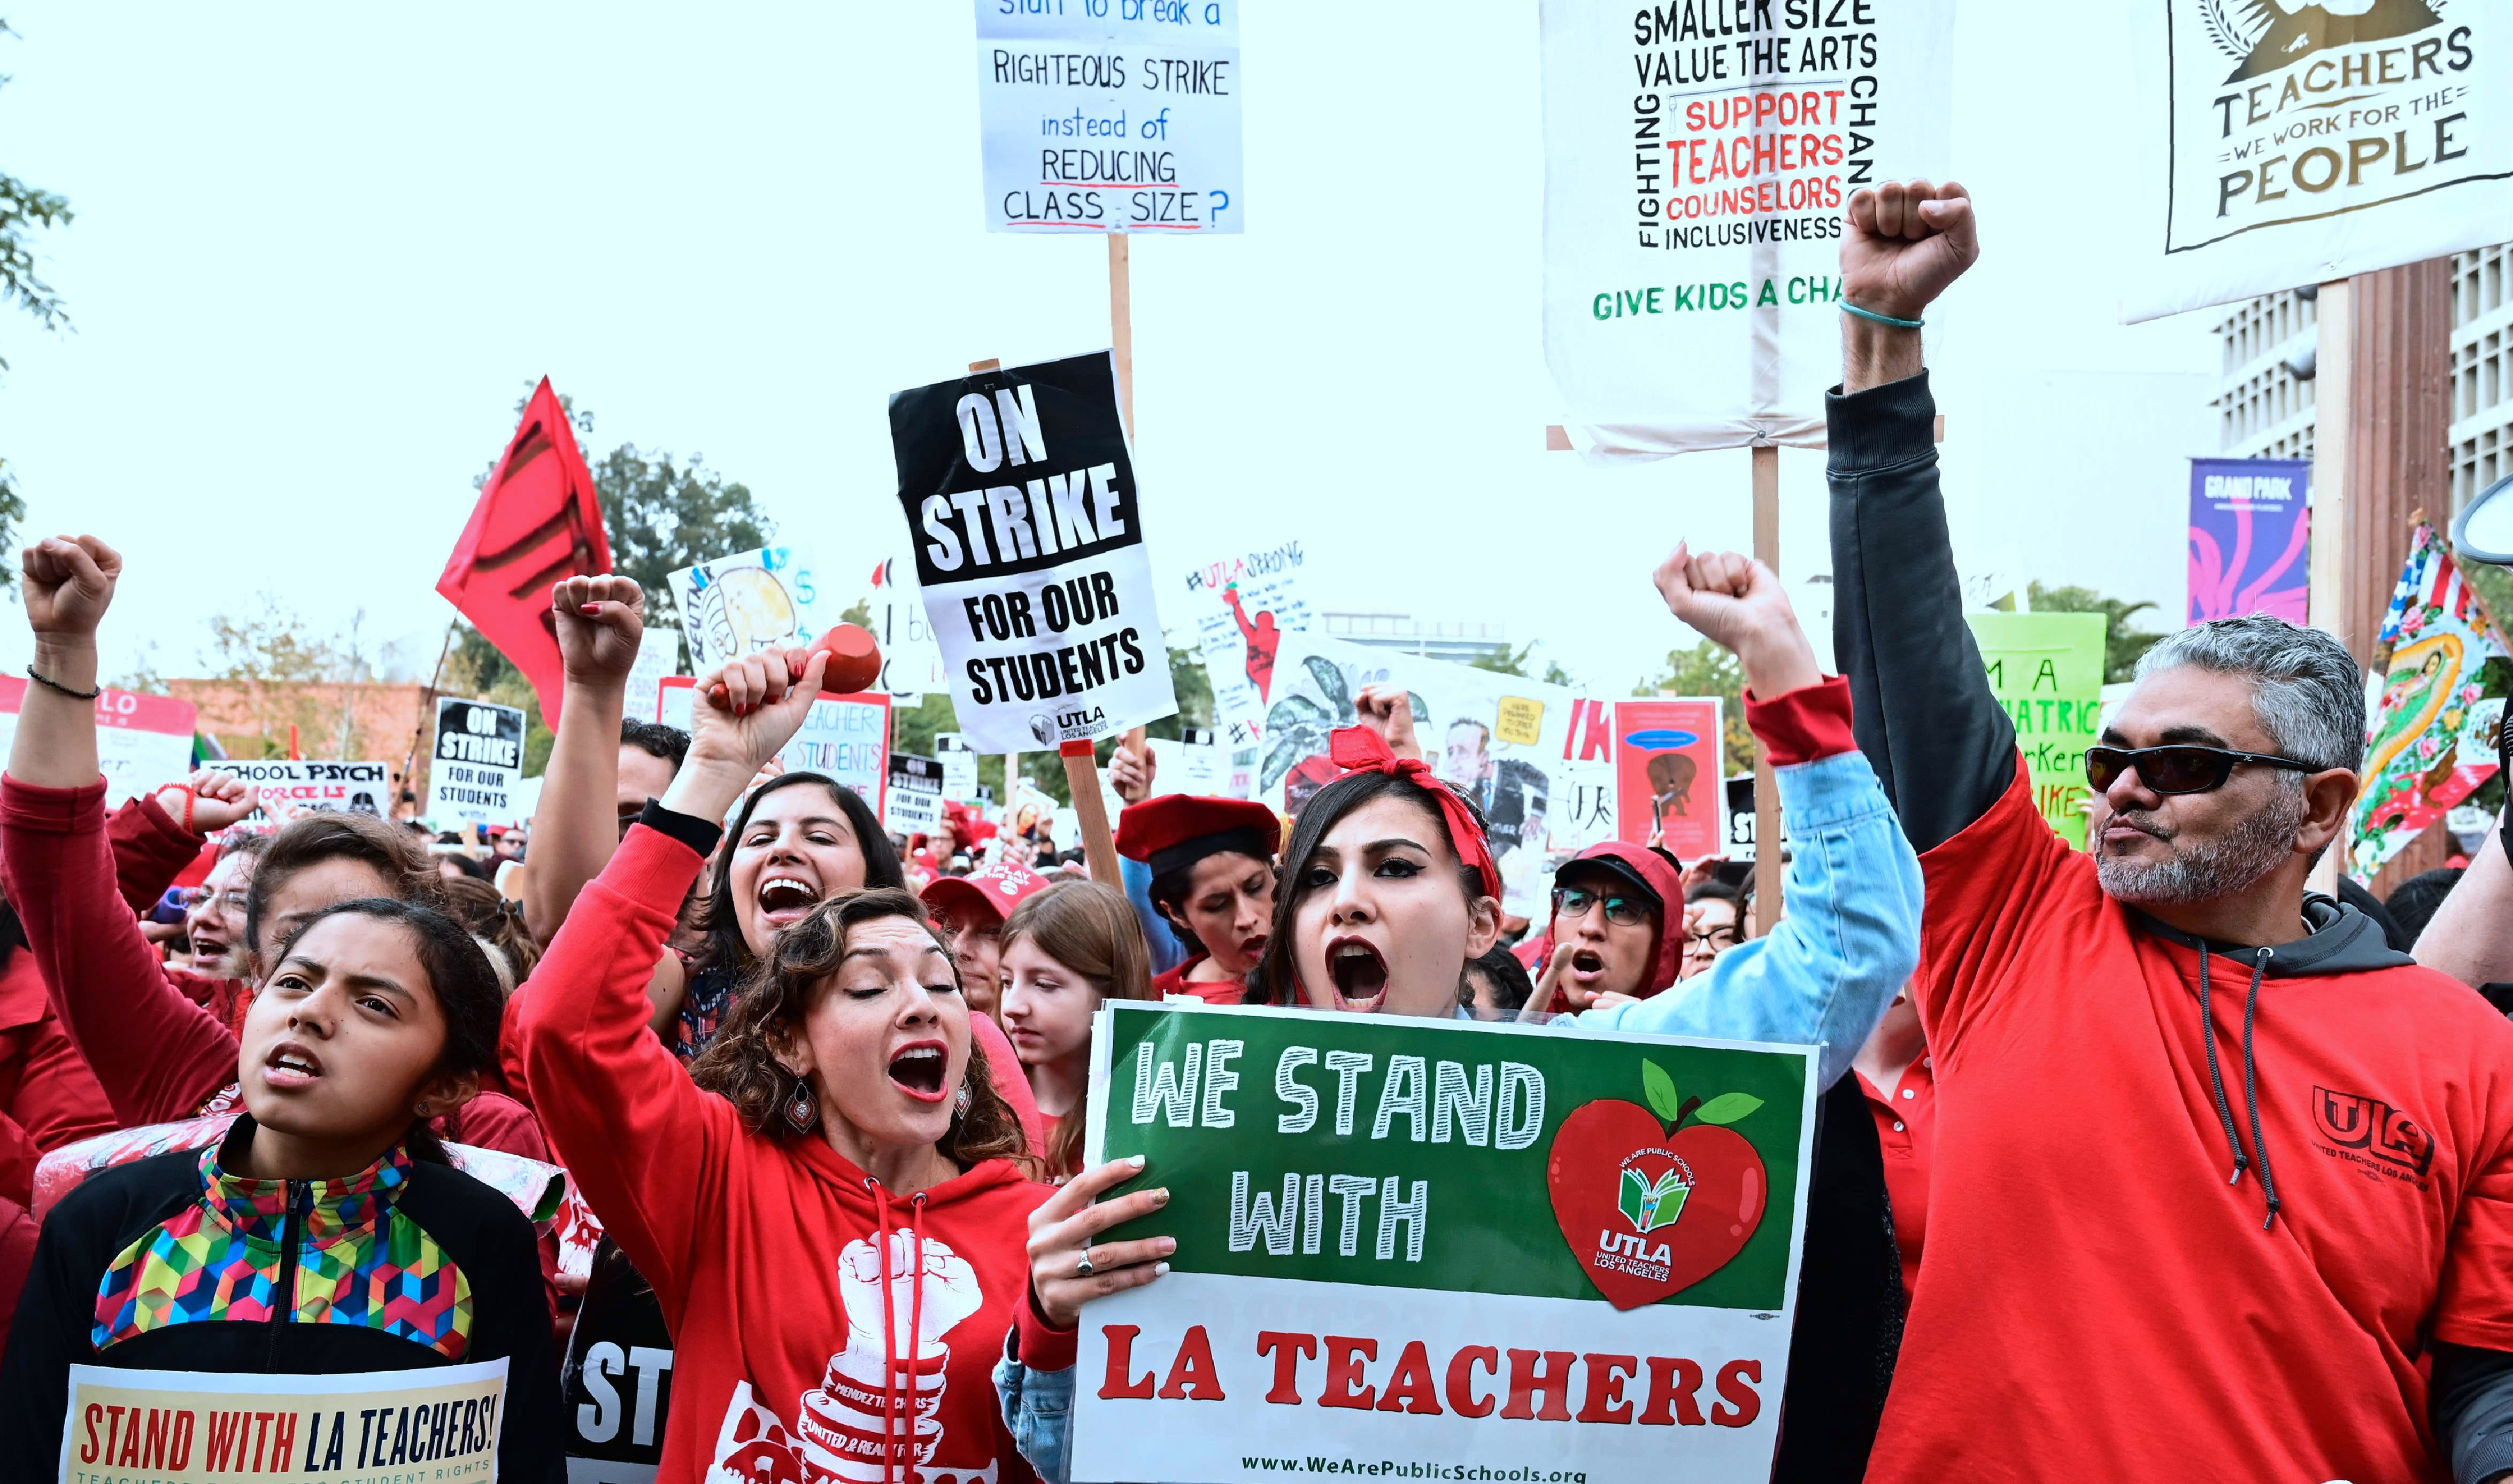 My special needs students needed their teachers in the classroom — not on the picket line